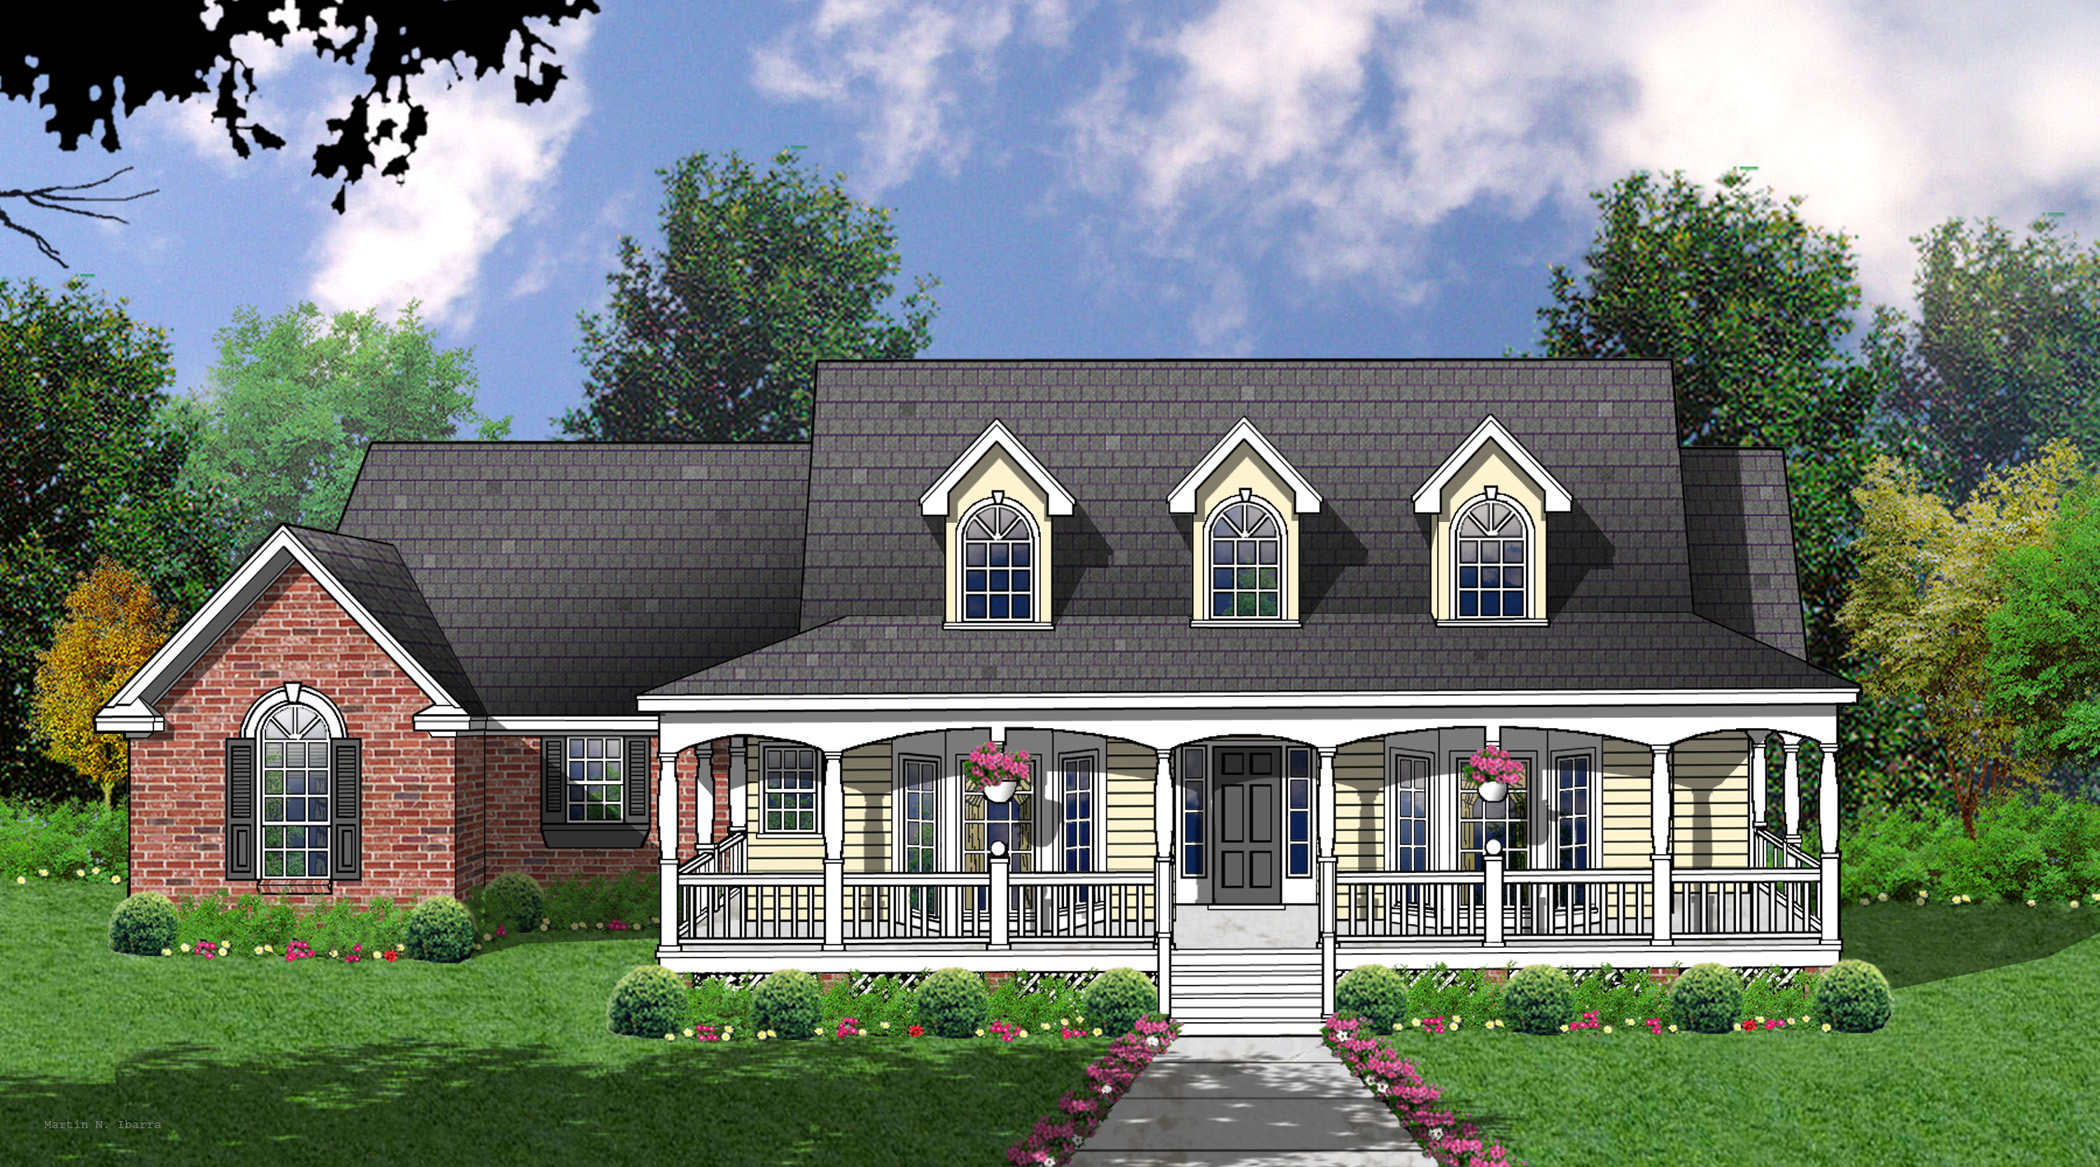 Charming Country Home Plan - 7469rd 1st Floor Master